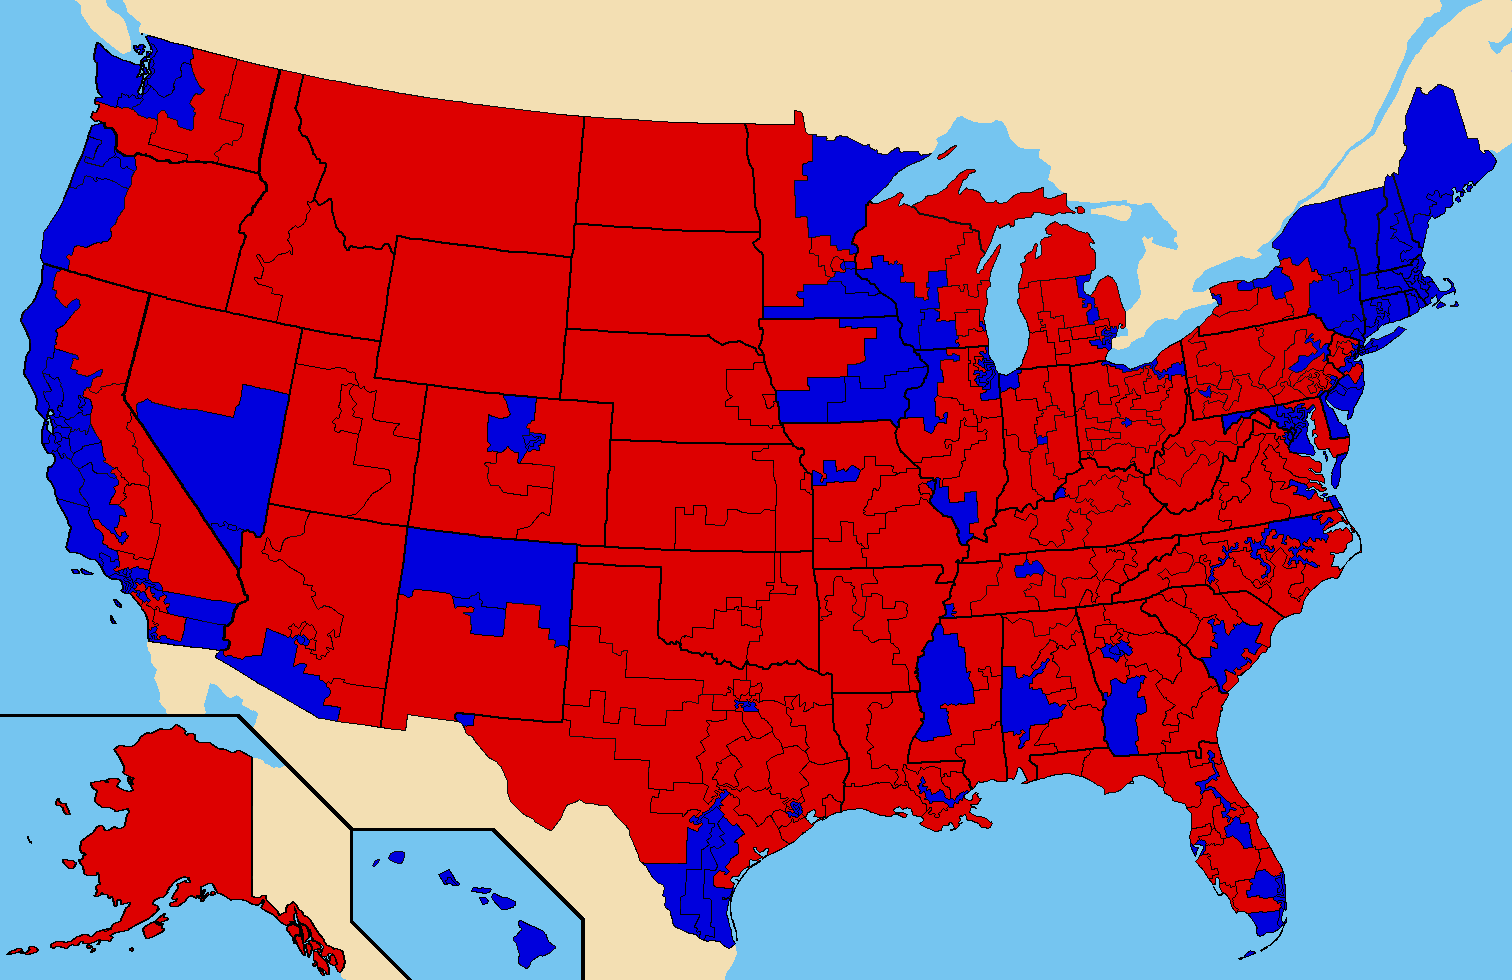 FileUS Congressional District Presidential Electionpng - District map us election 2012